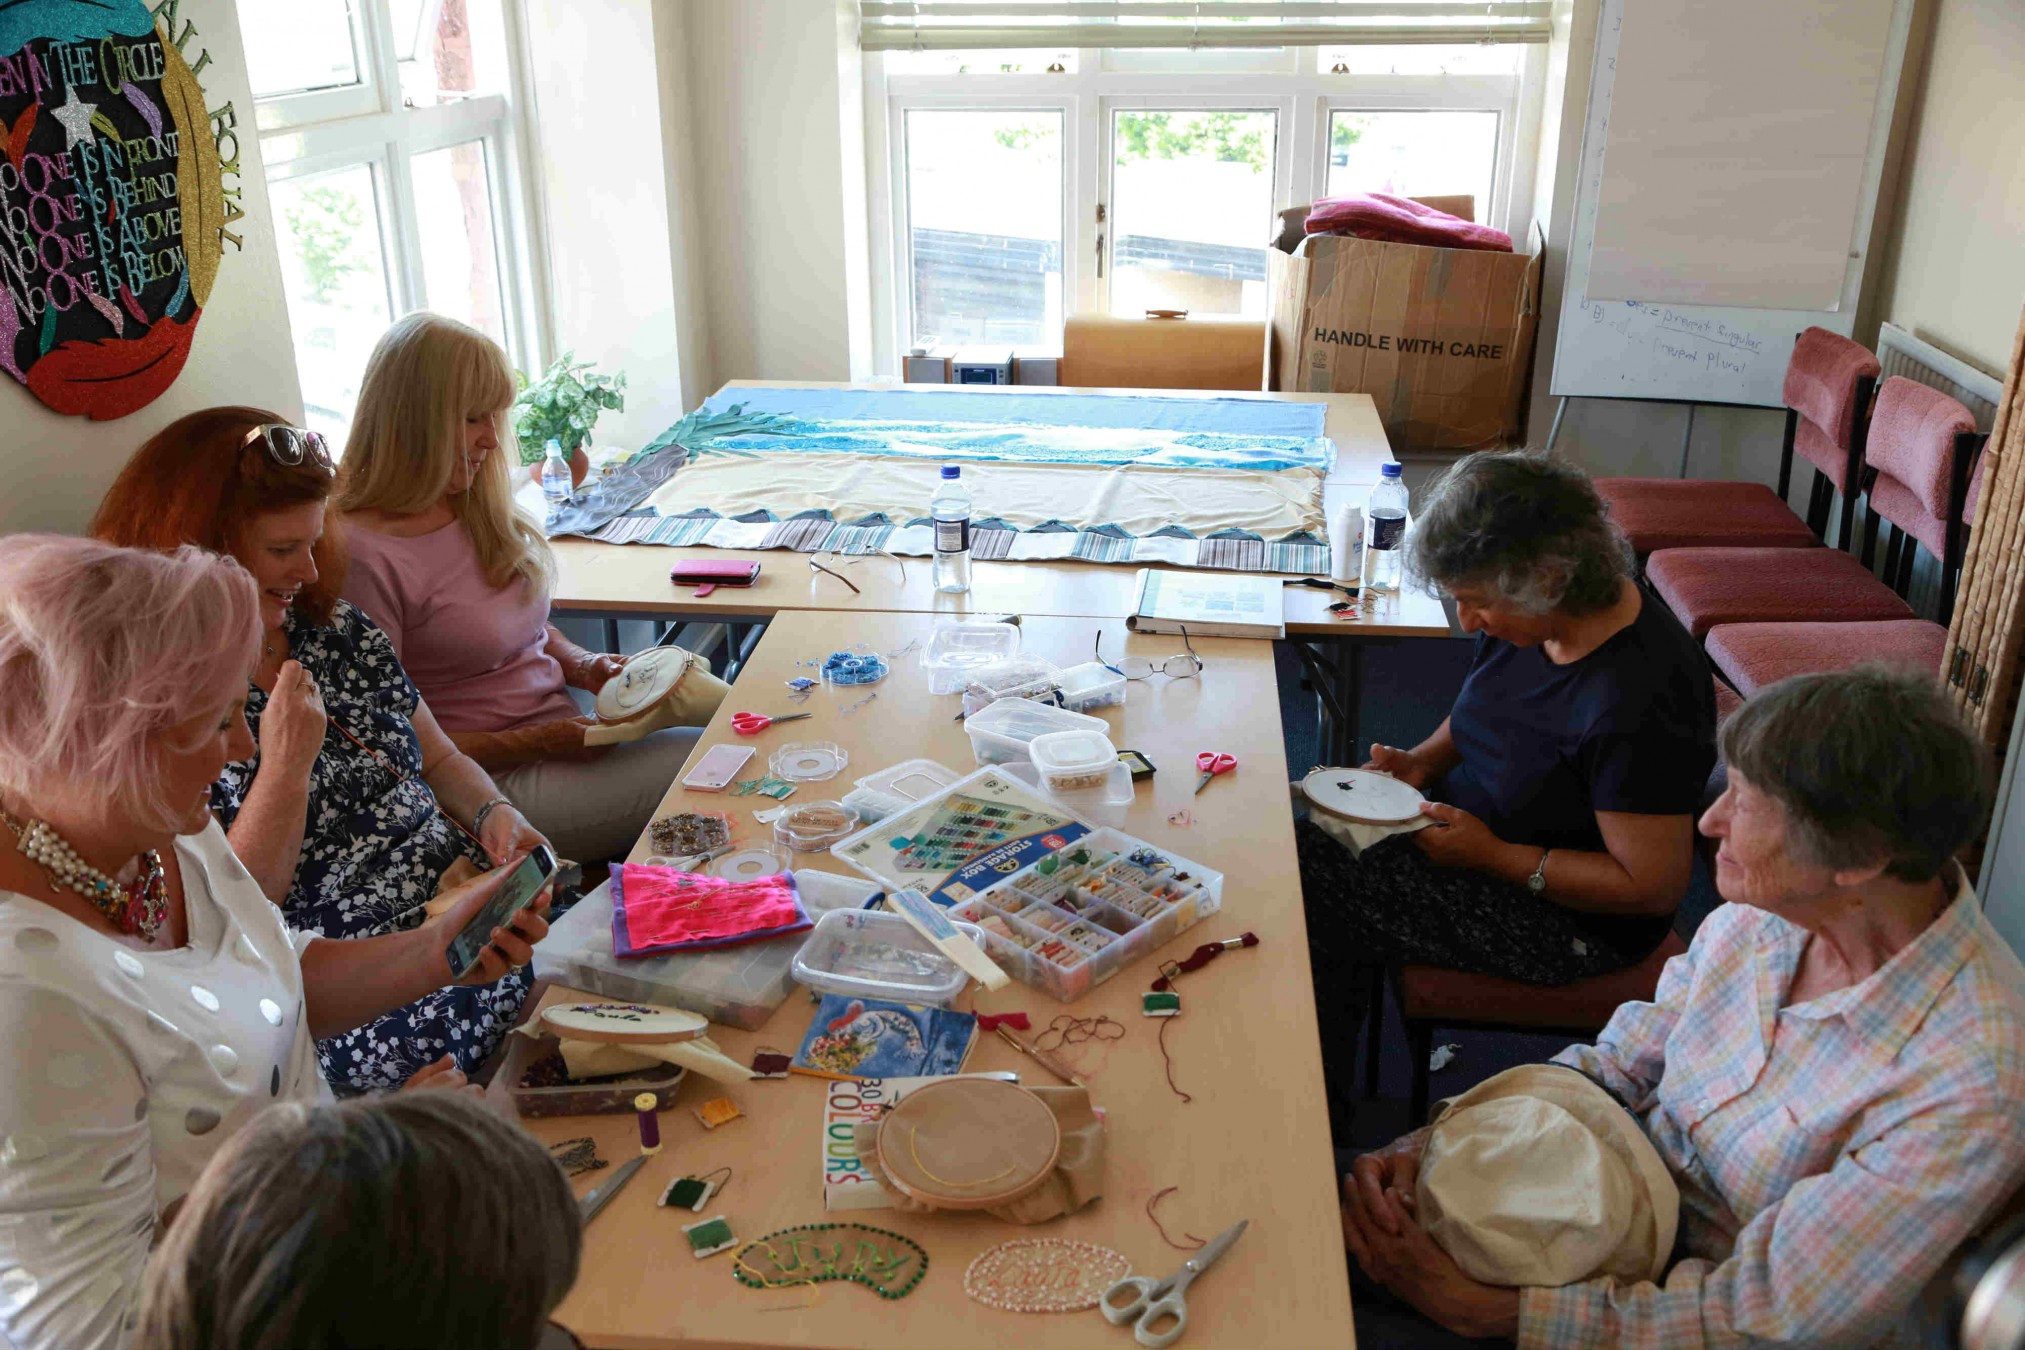 The Sewing Rooms works with women over the age of 50